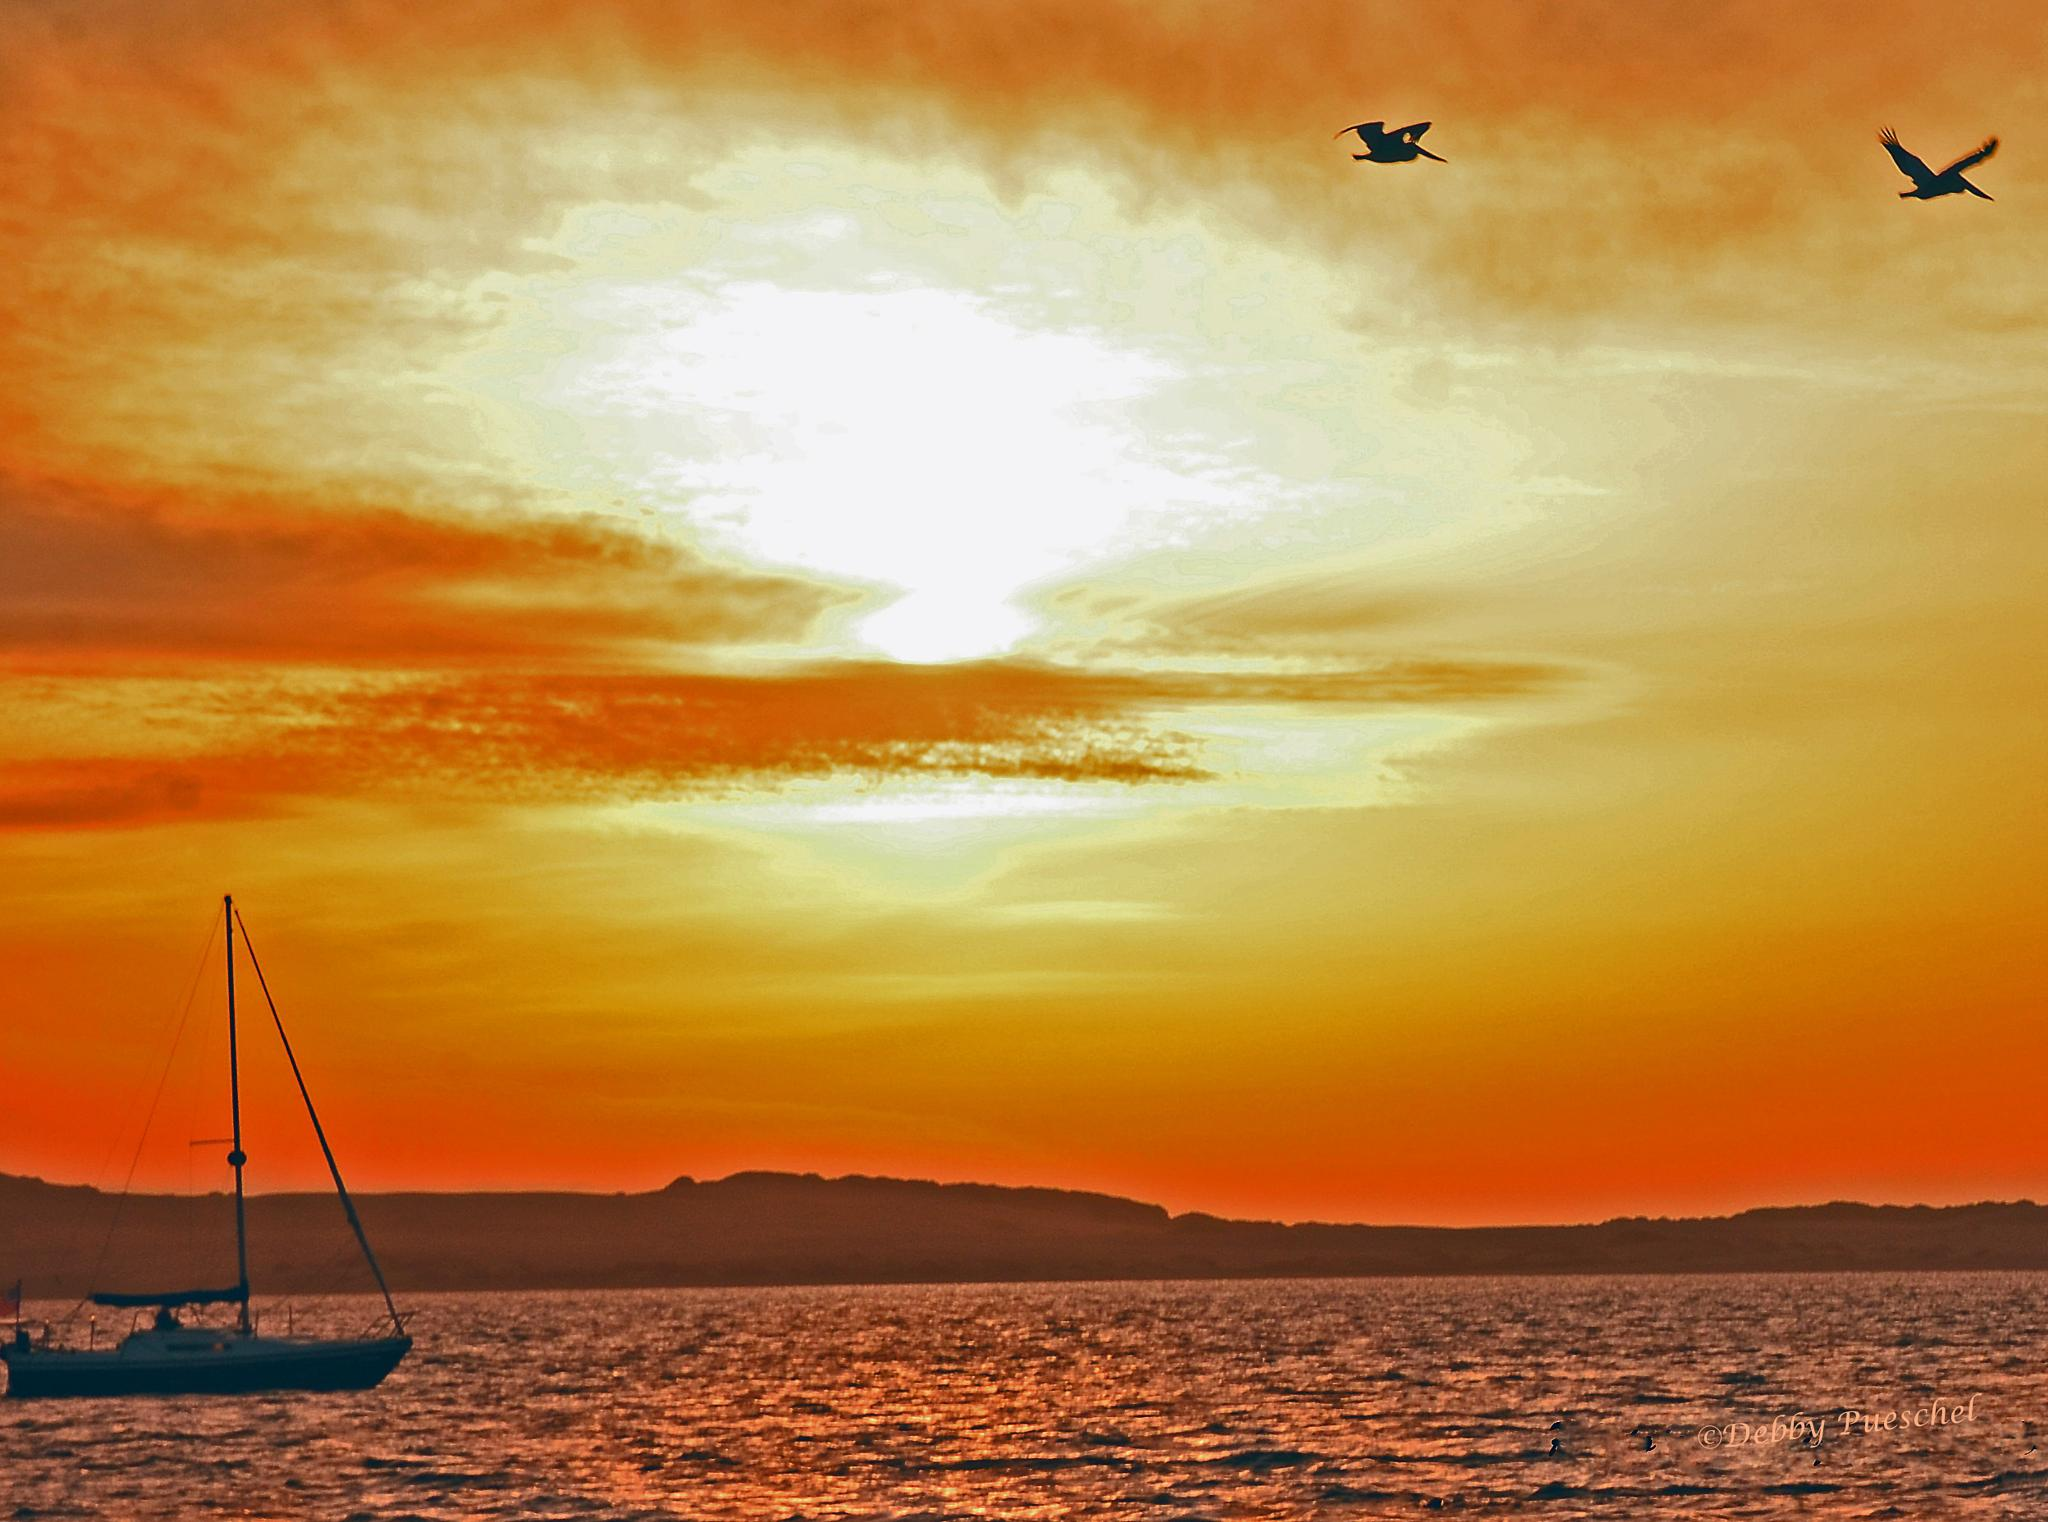 Sailing at Sunset by Debby Pueschel